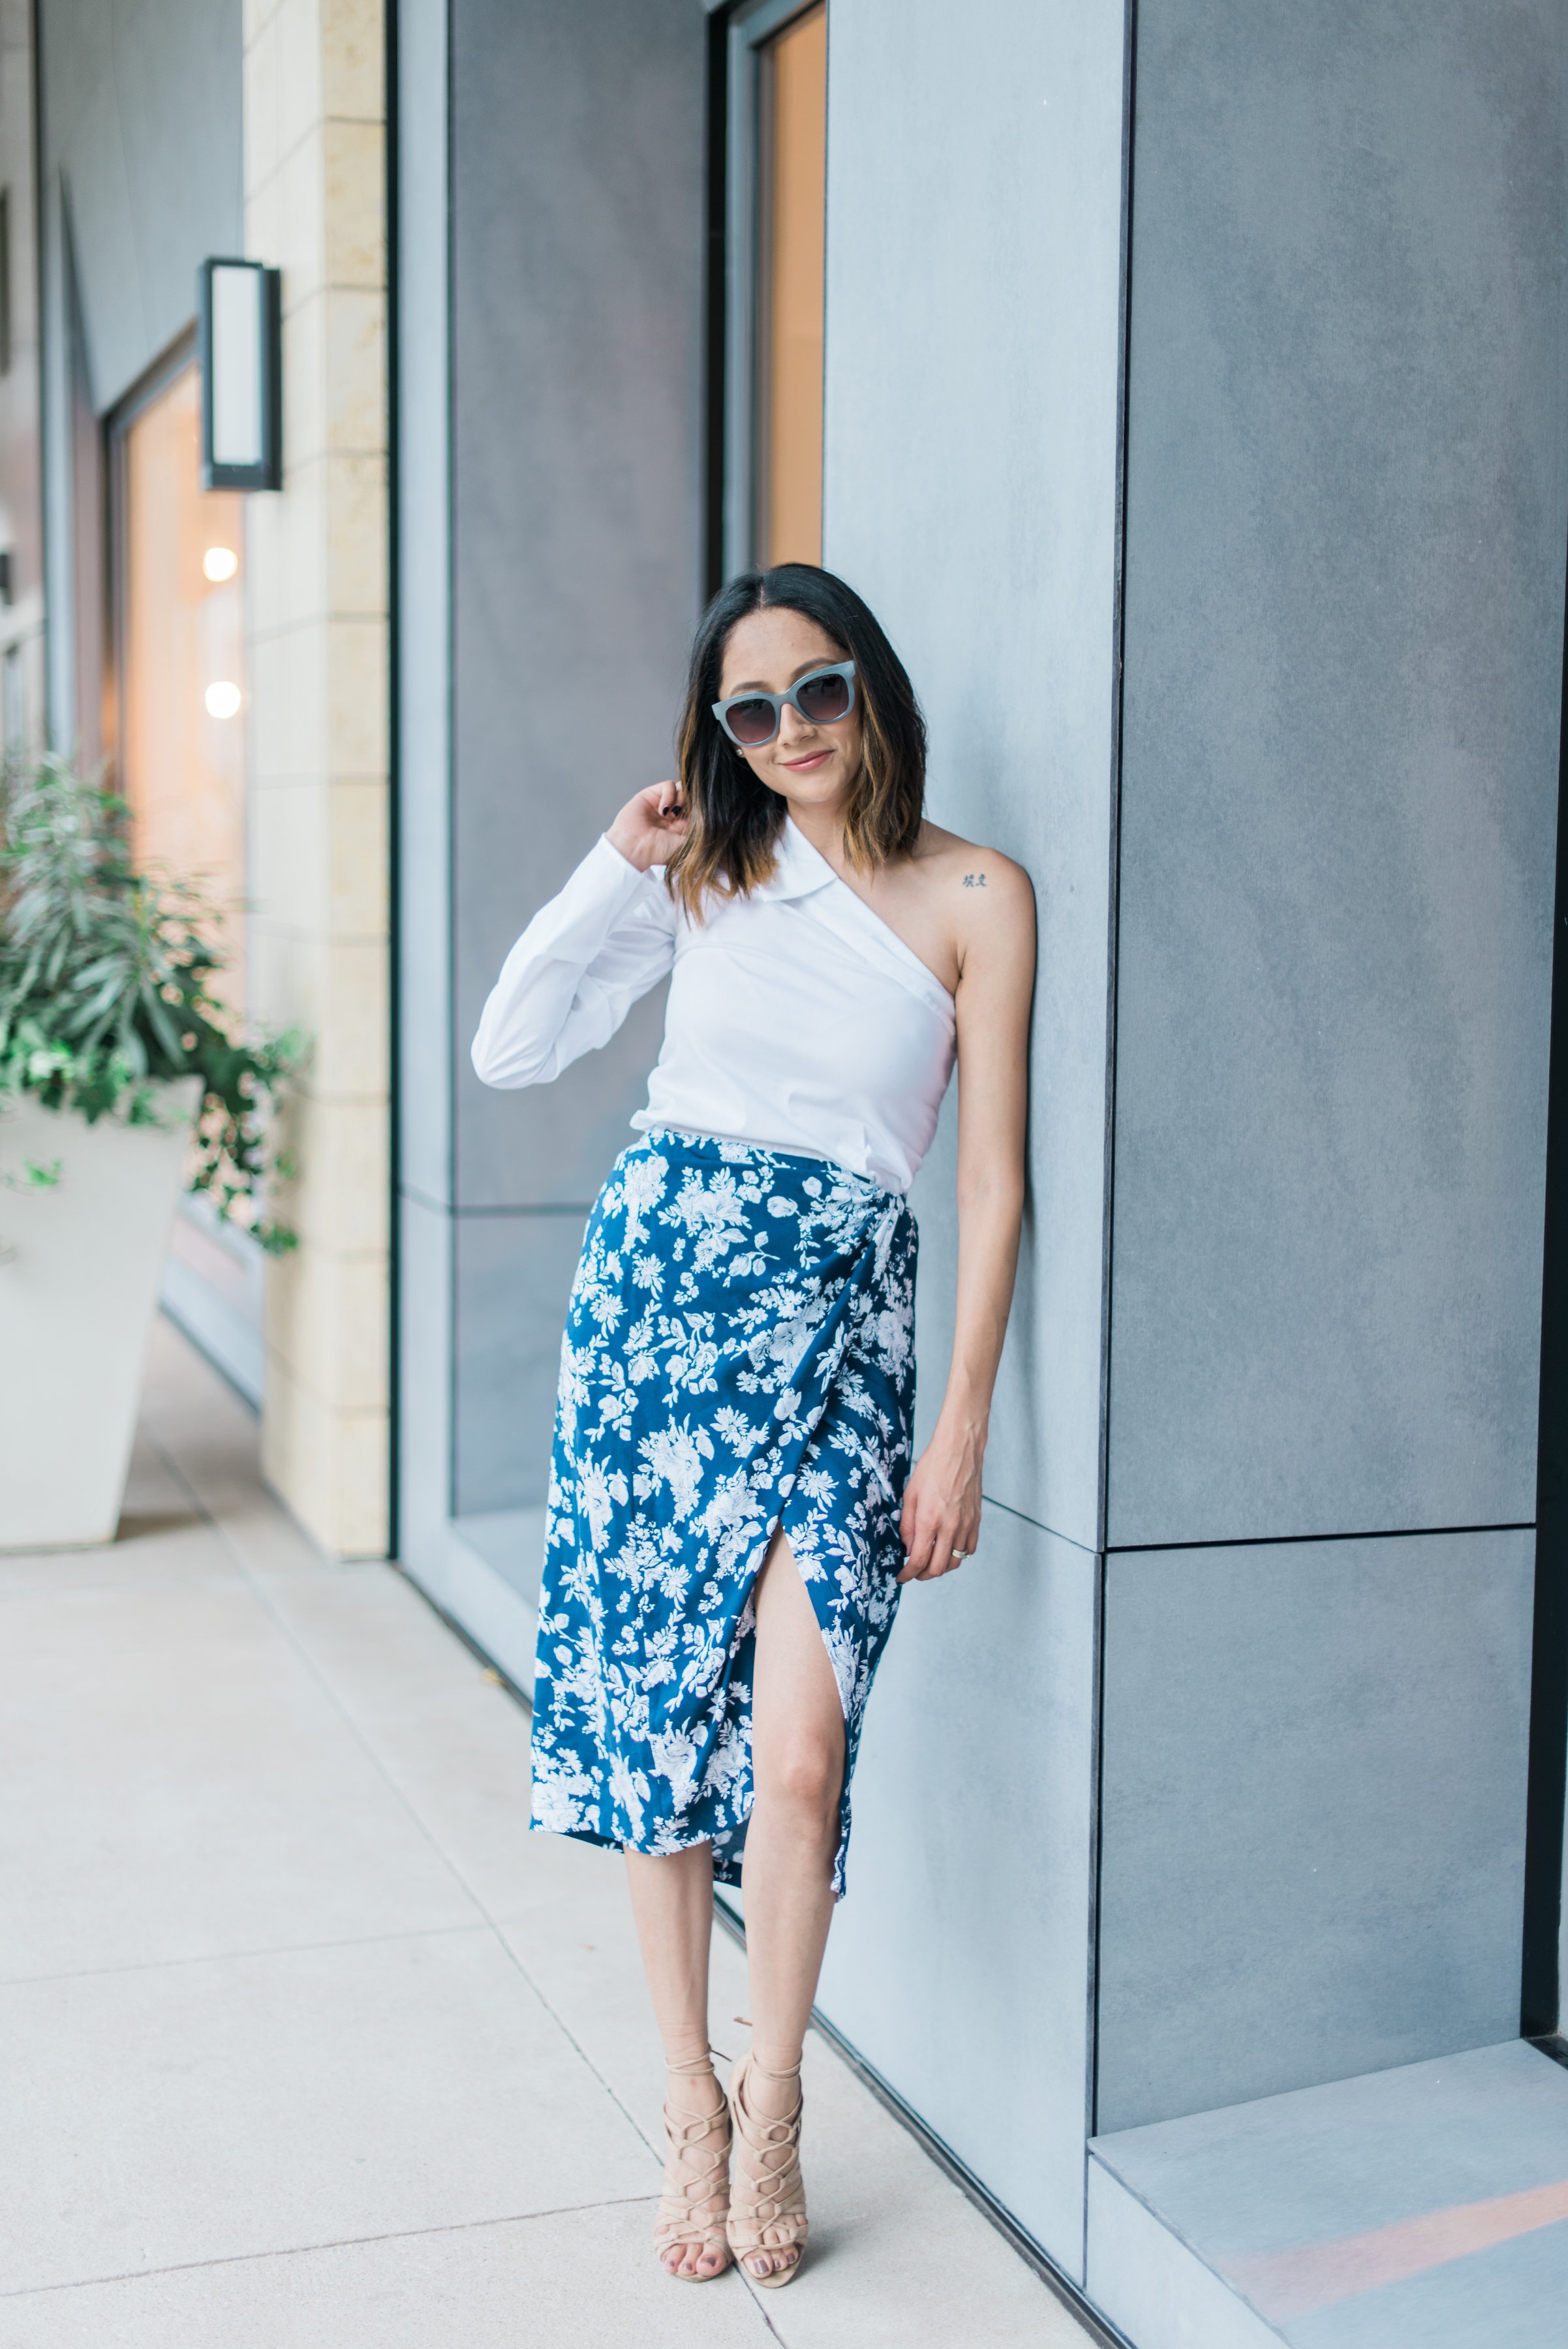 Lifestyle blogger Lilly Beltran of Daily Craving in a summer look wearing a wrap skirt and one sleeve top with nude sandals